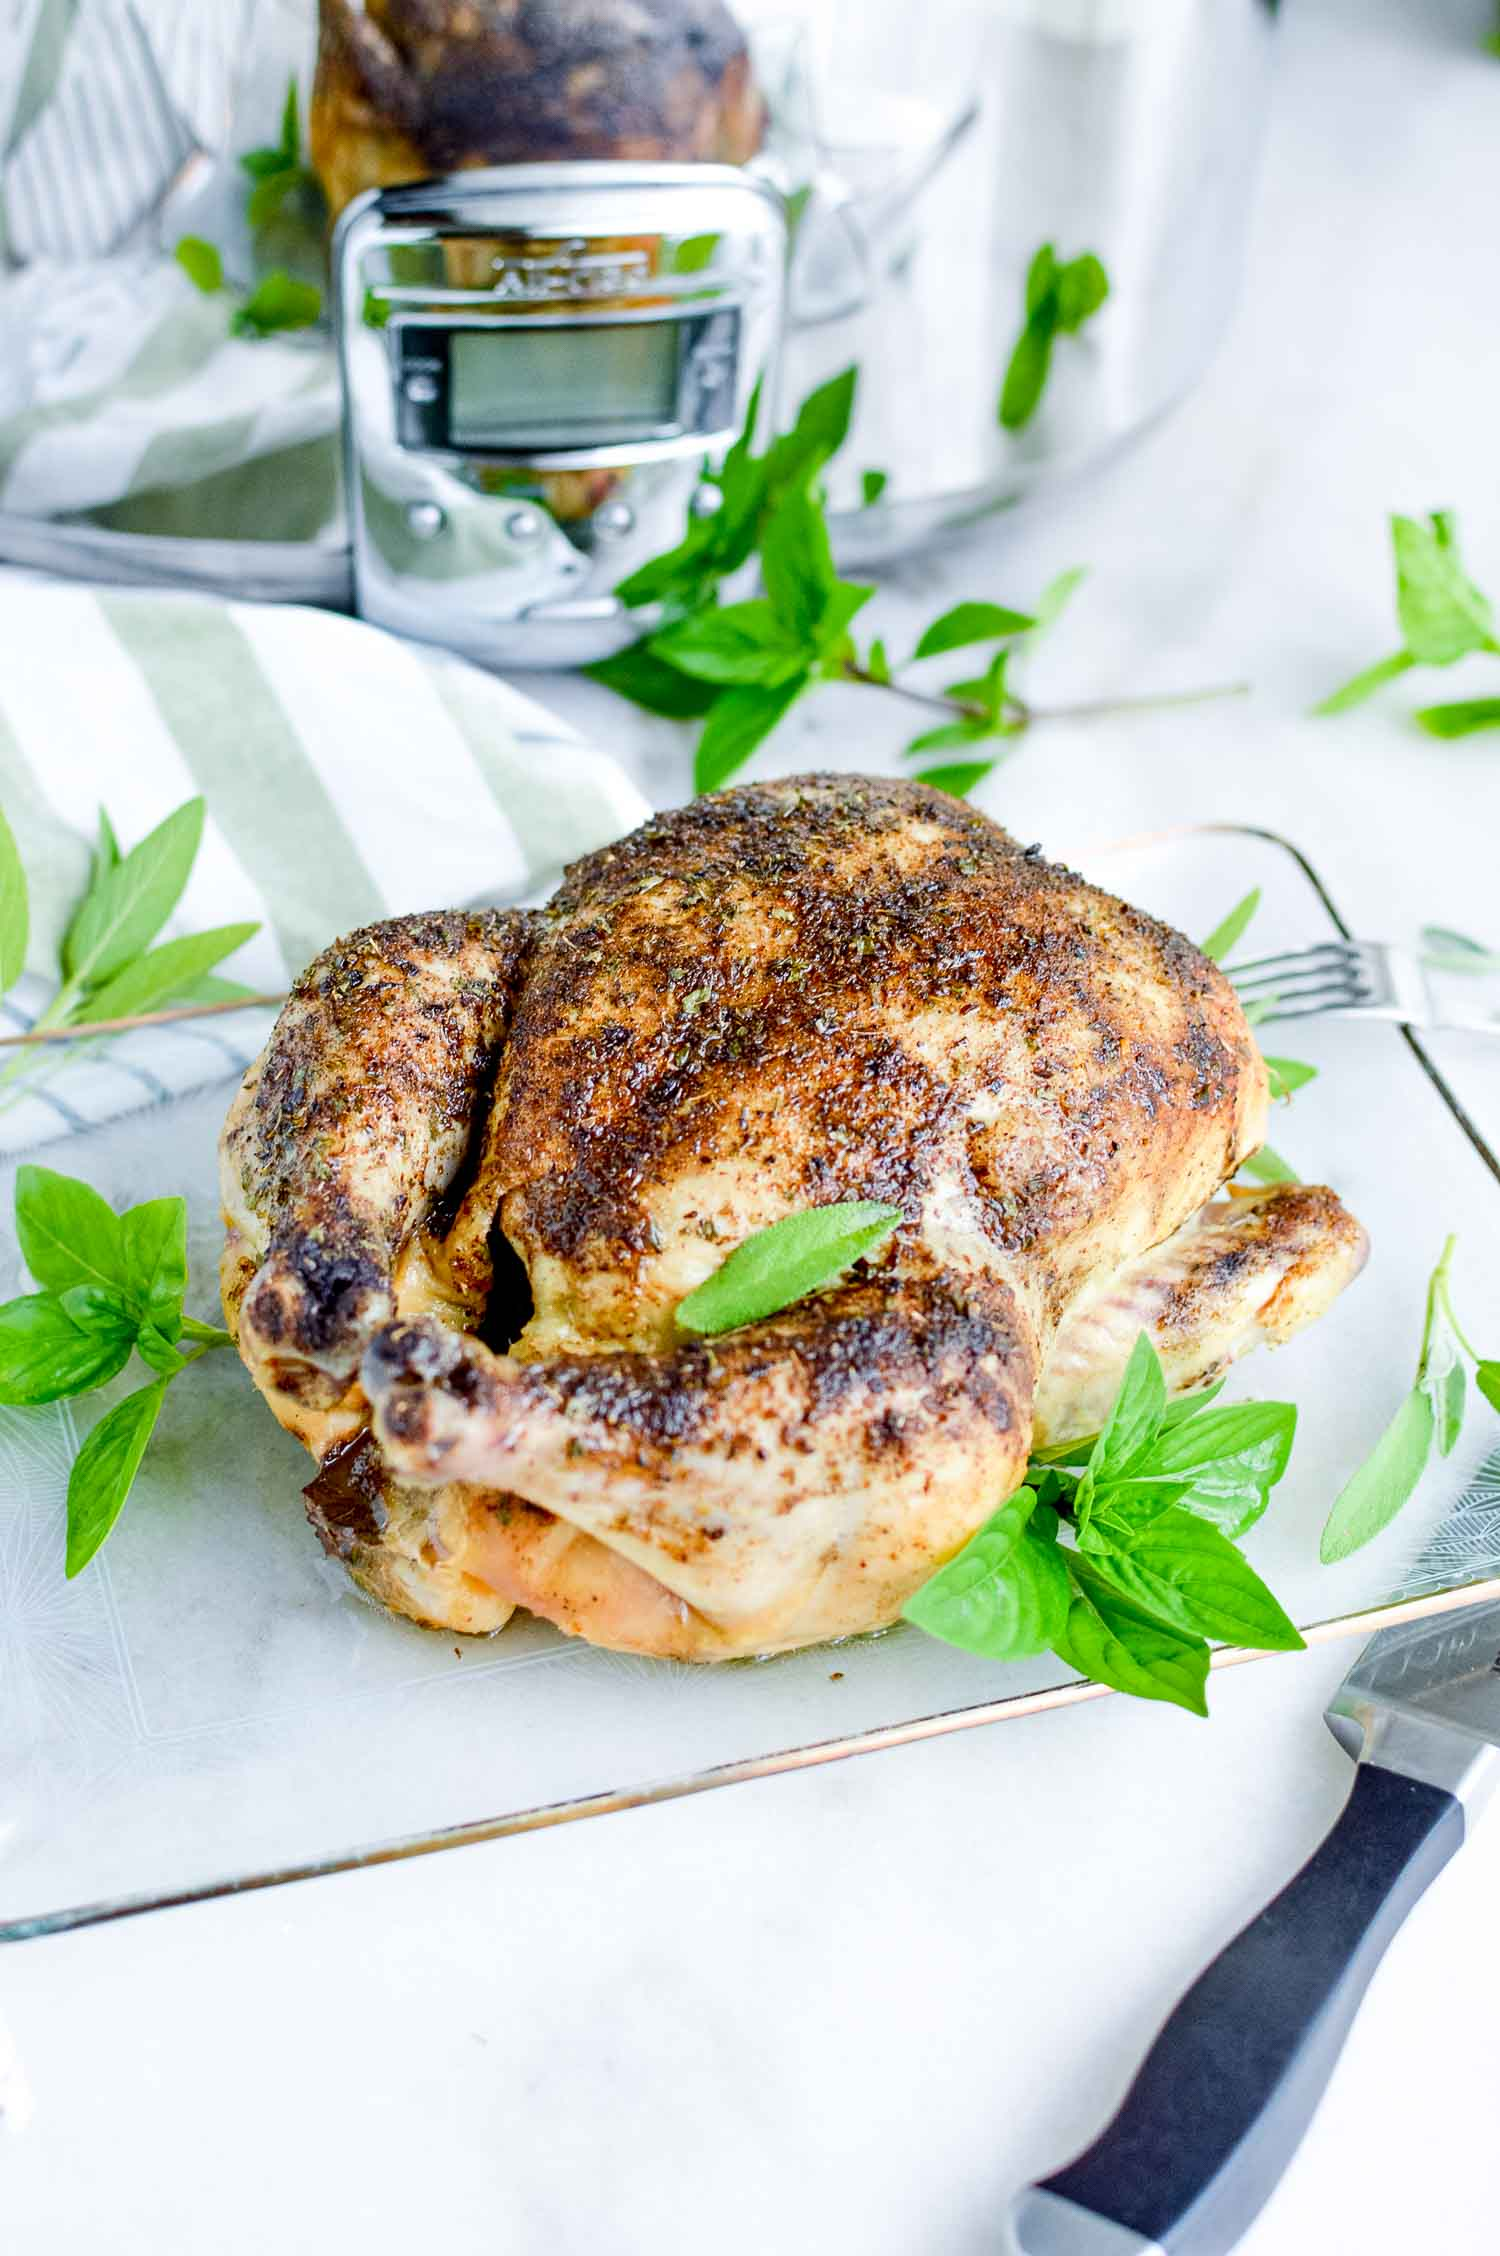 A slow cooker roast chicken on a clear tray with a metal knife and fork next to it and green herbs around and on top of it.